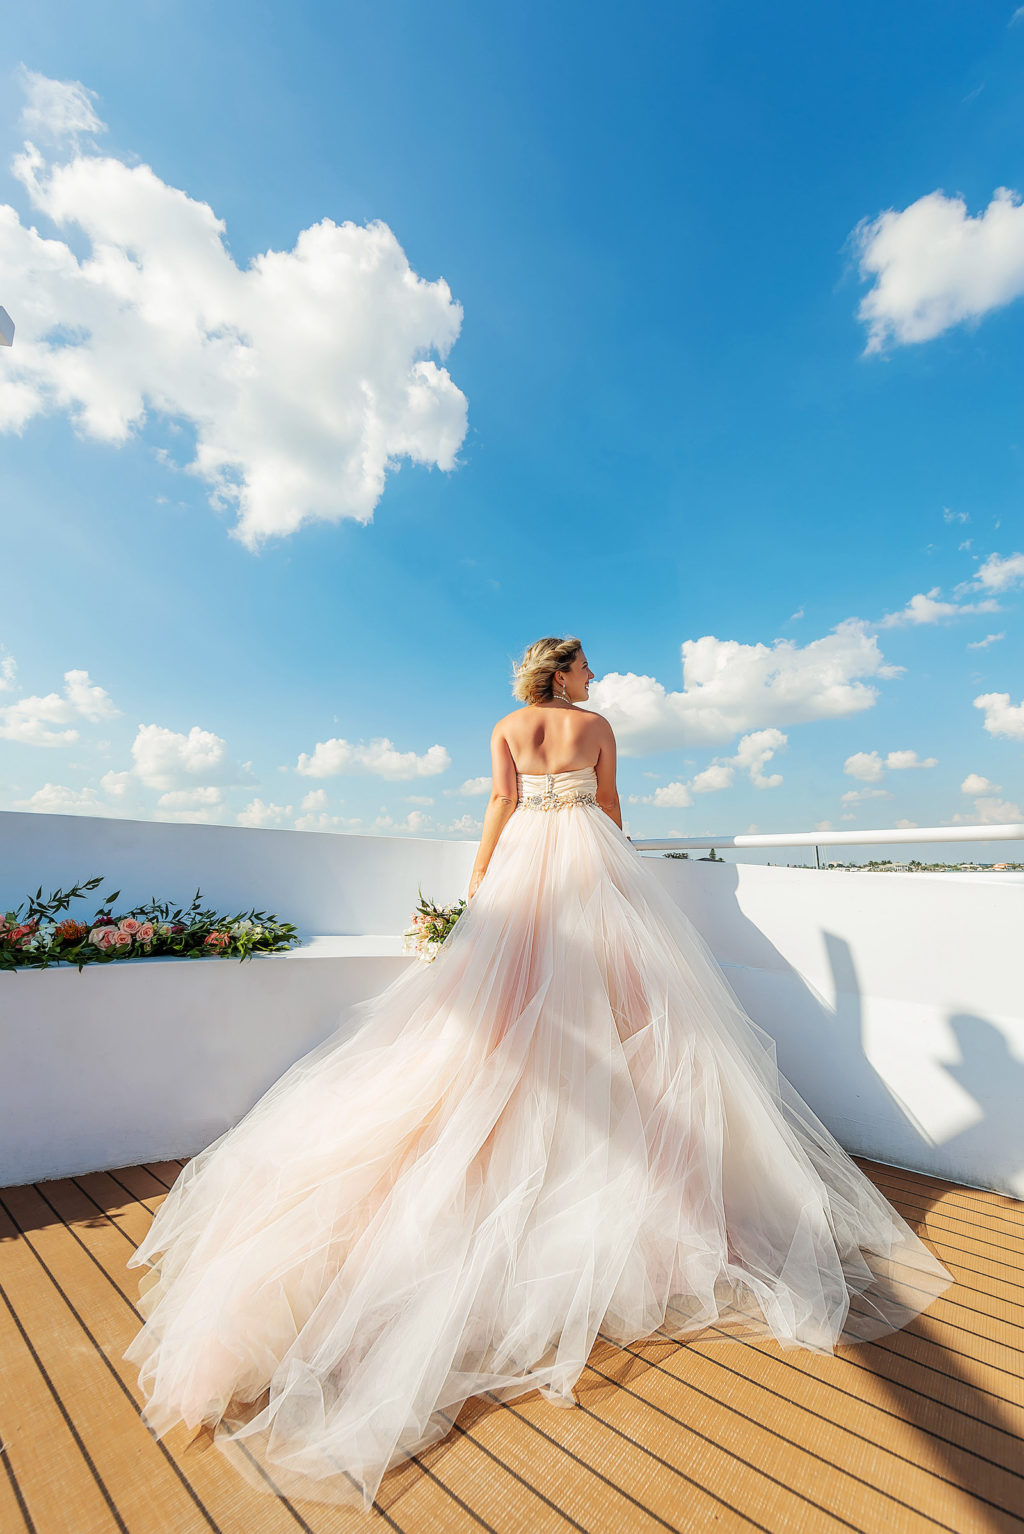 Florida Bride Wearing Princess Ballgown Strapless Tulle Skirt with Blush Pink Lining and Floral Belt Wedding Dress on Deck of Waterfront Wedding Venue Yacht StarShip   Tampa Bay Wedding Photographer Limelight Photography